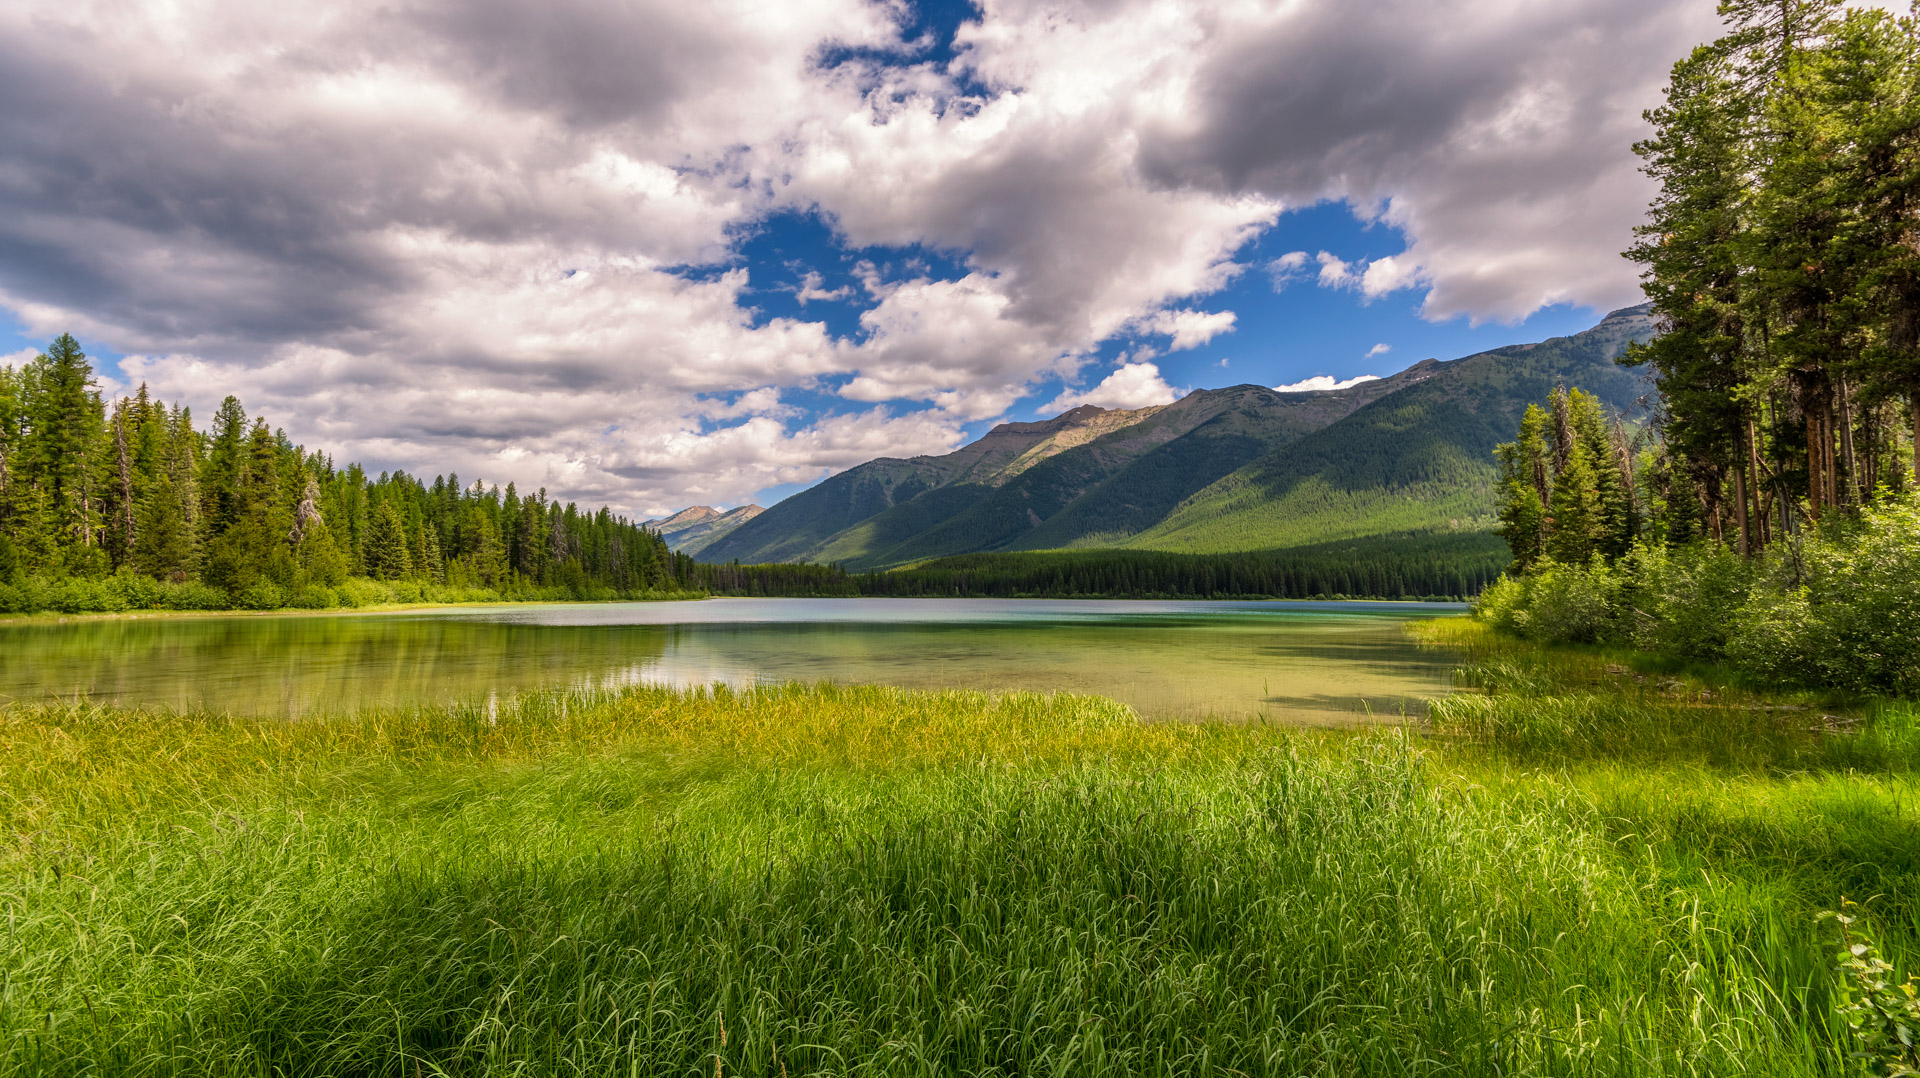 Clearwater Lake and the Swan Range